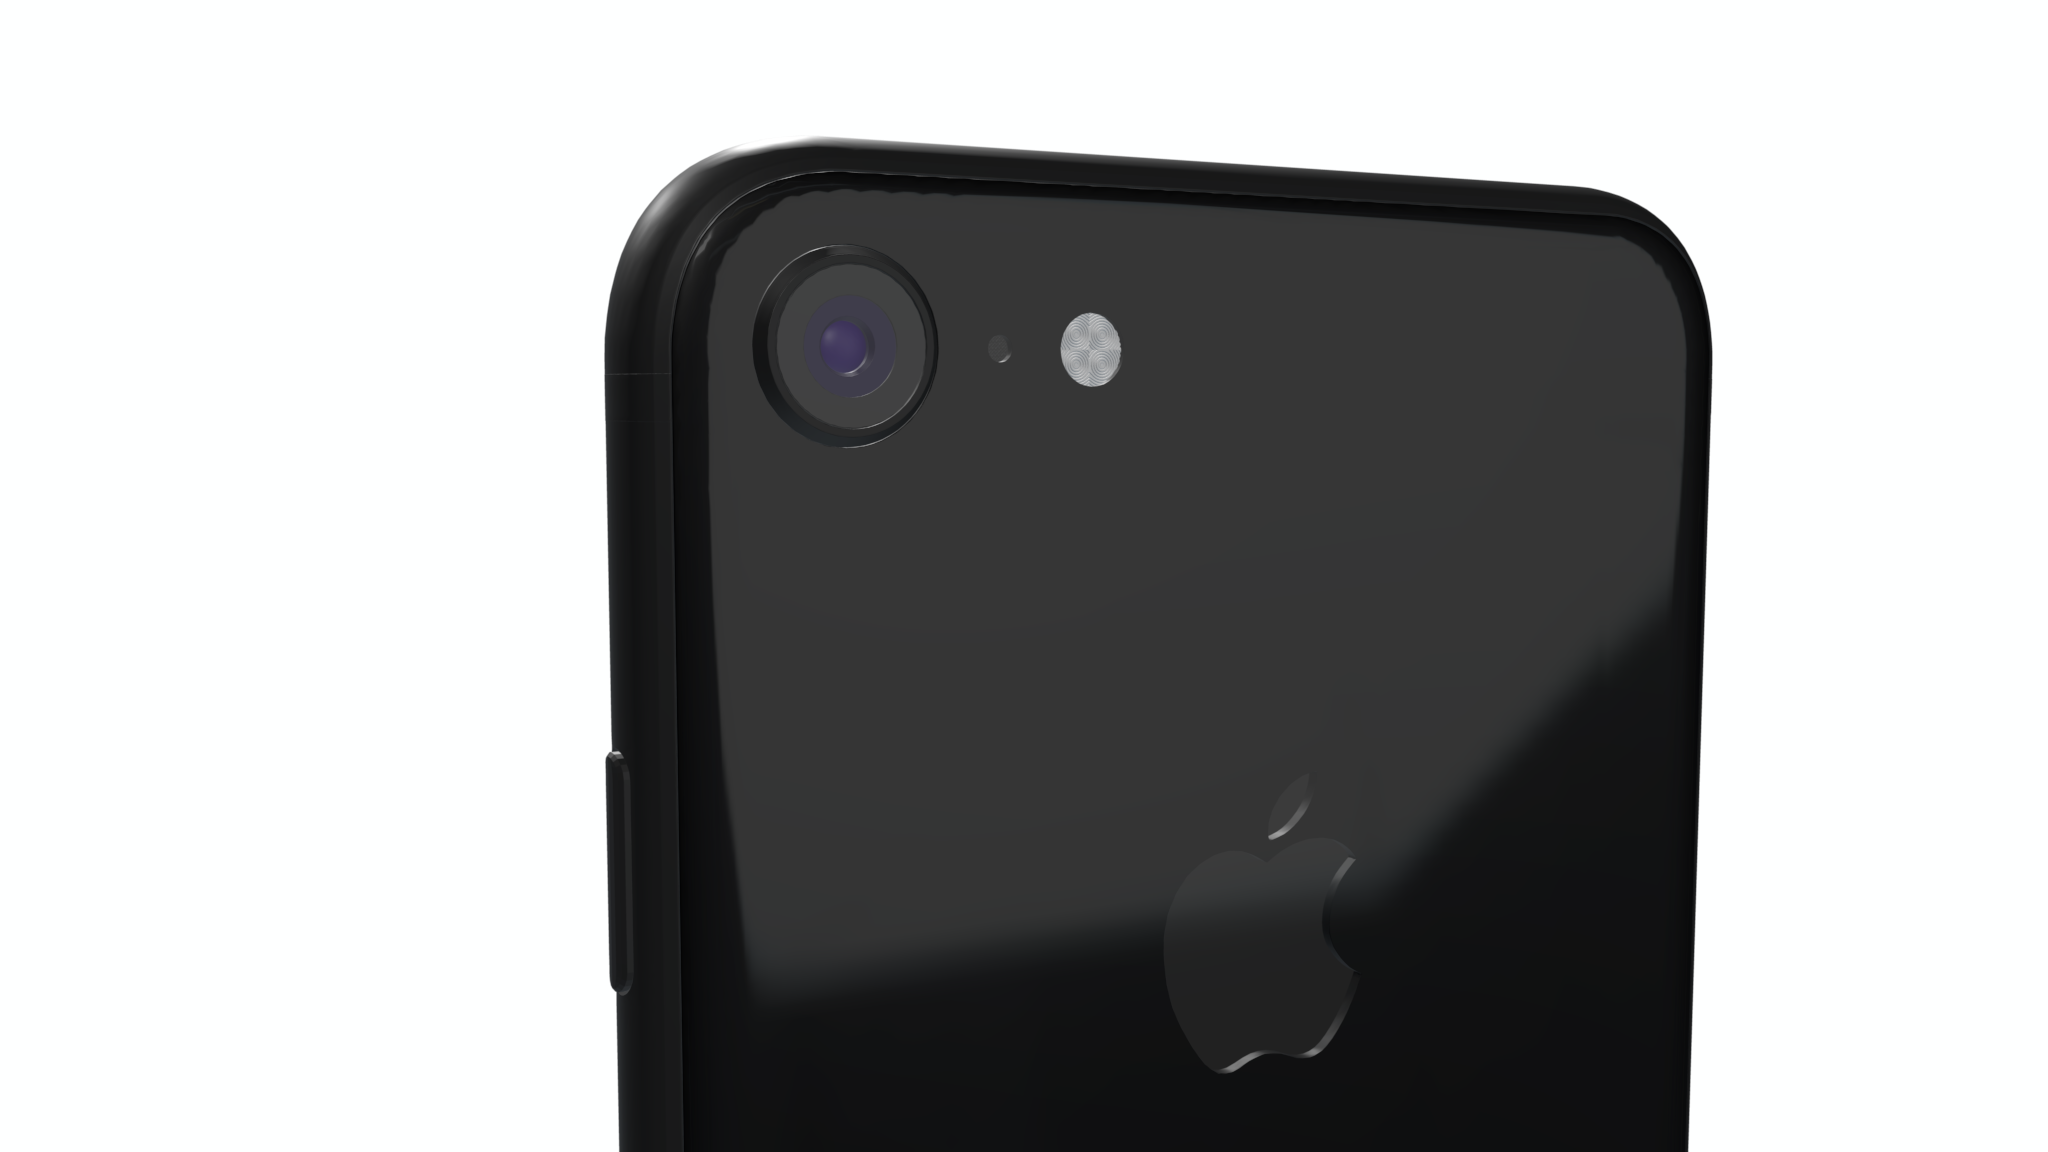 iPhone 8 mockup from back with reflection